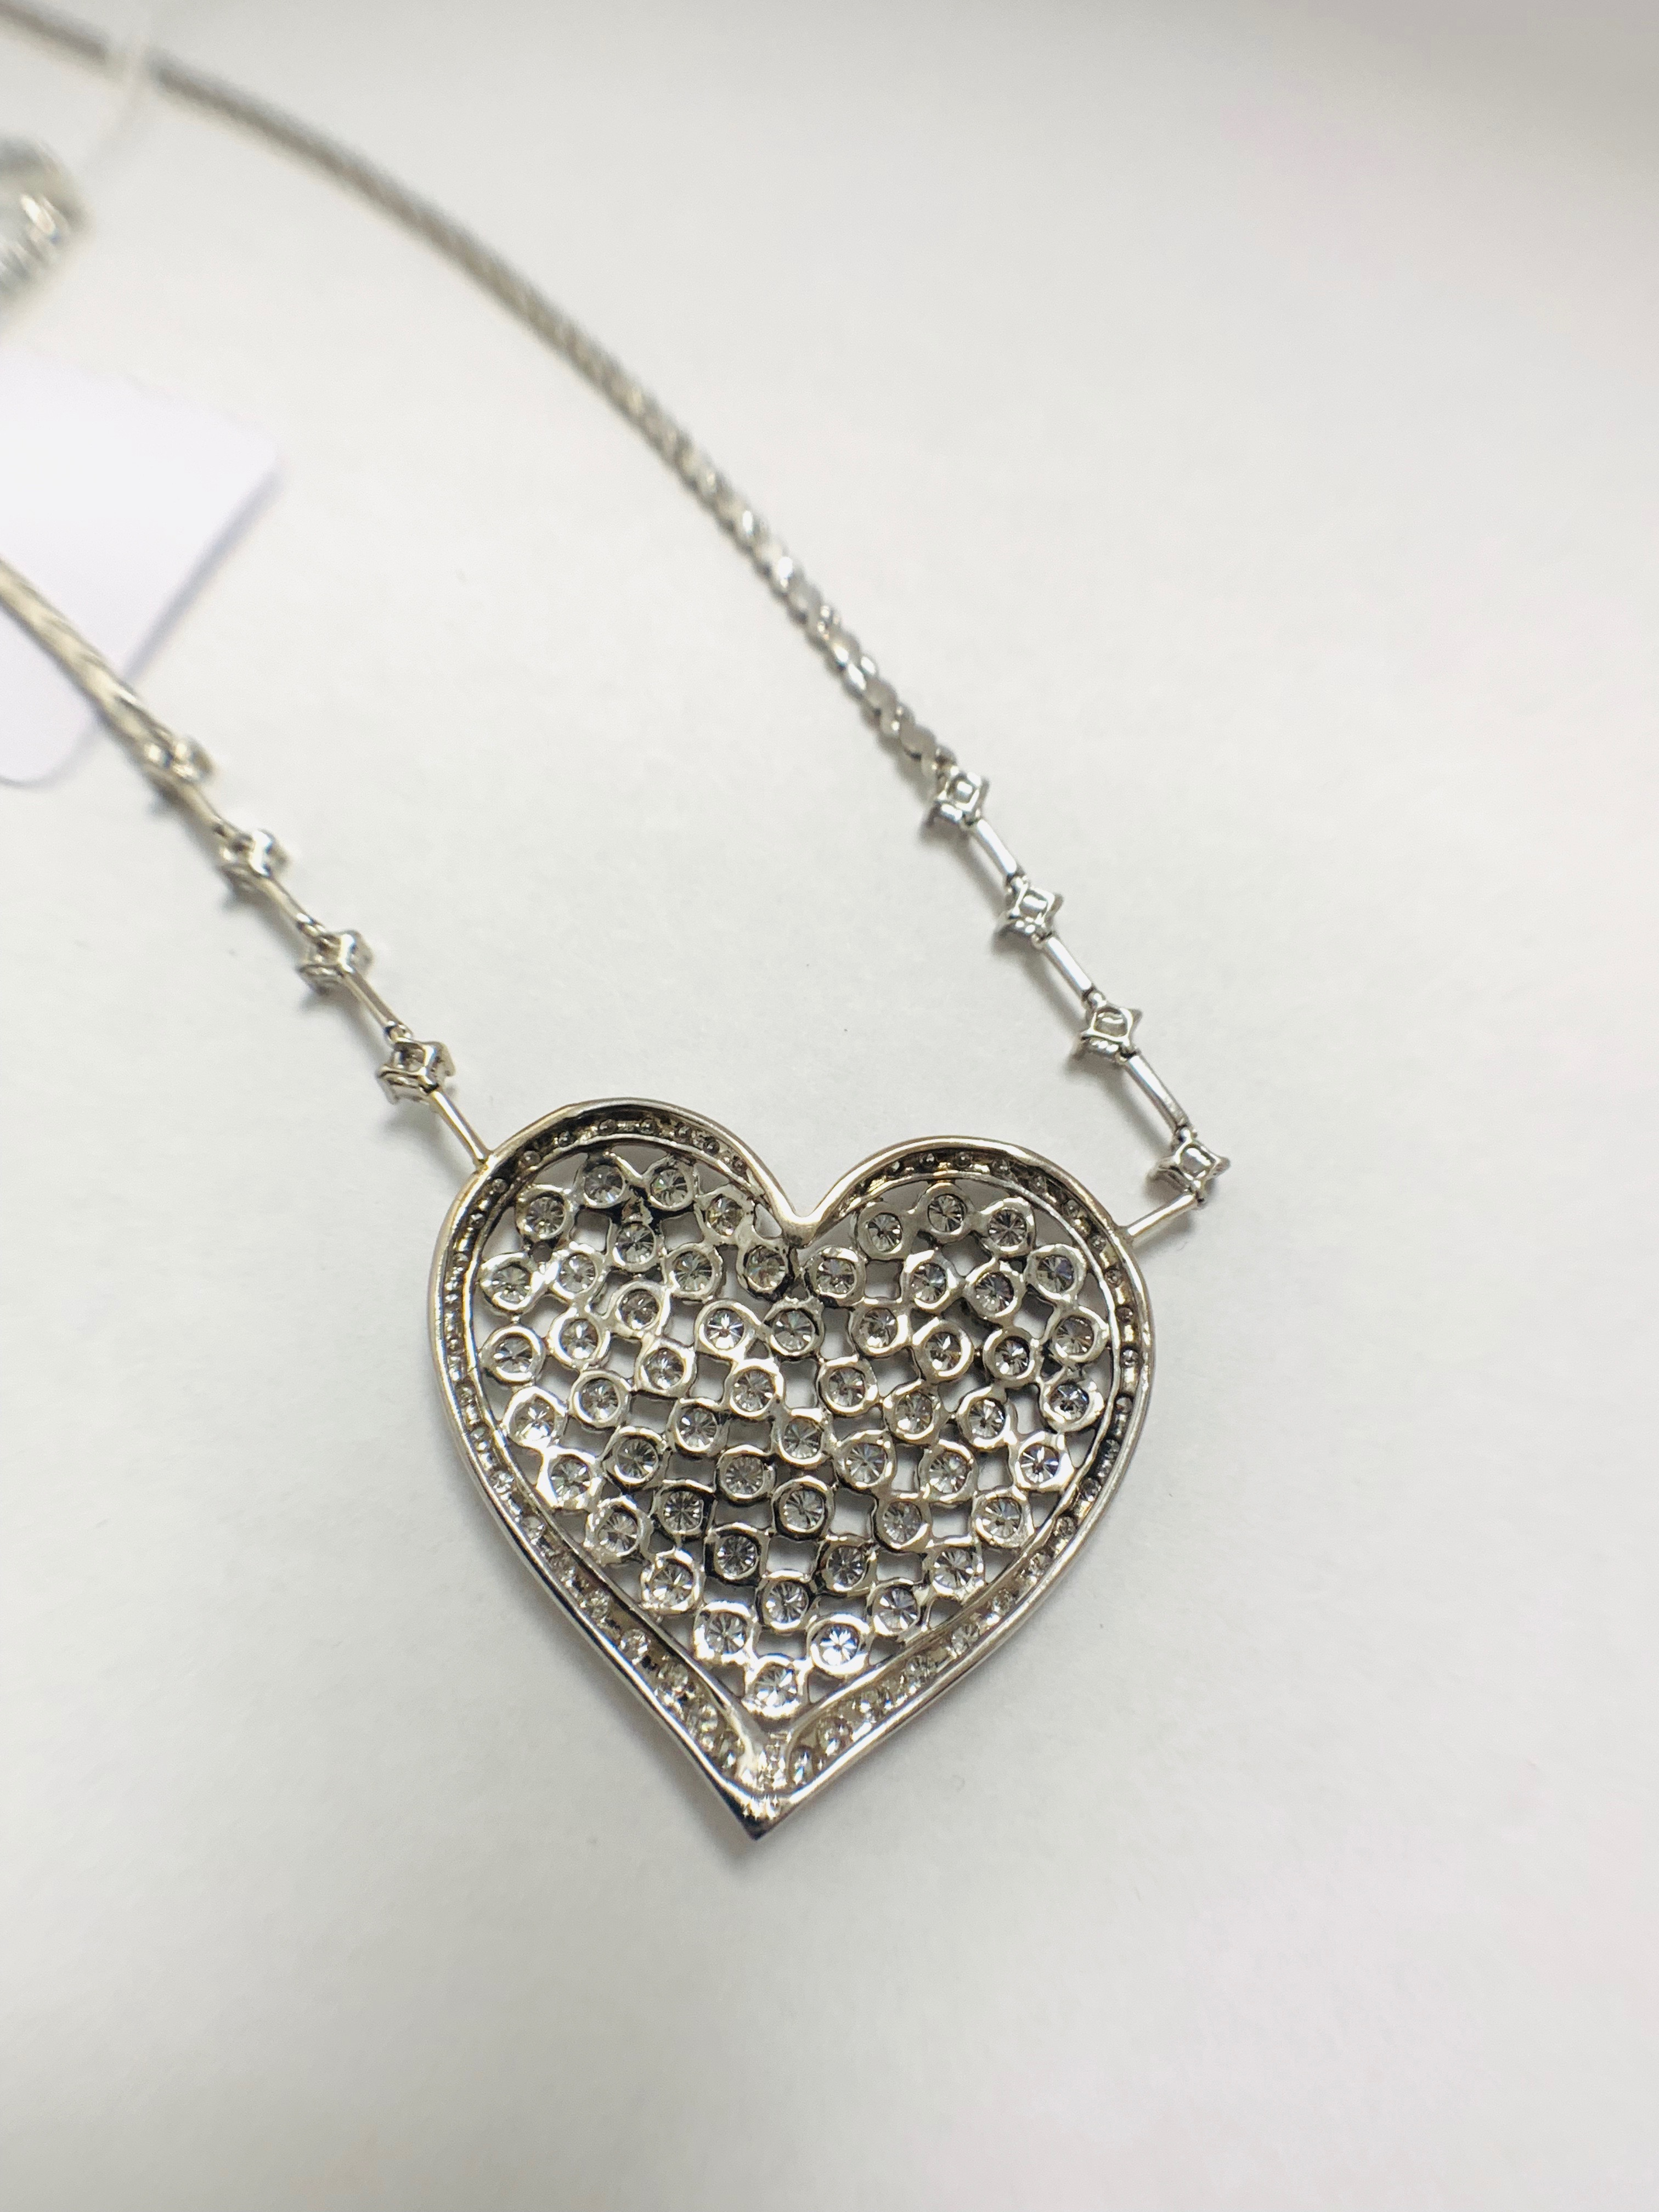 18ct White Gold Diamond heart necklace - Image 5 of 12